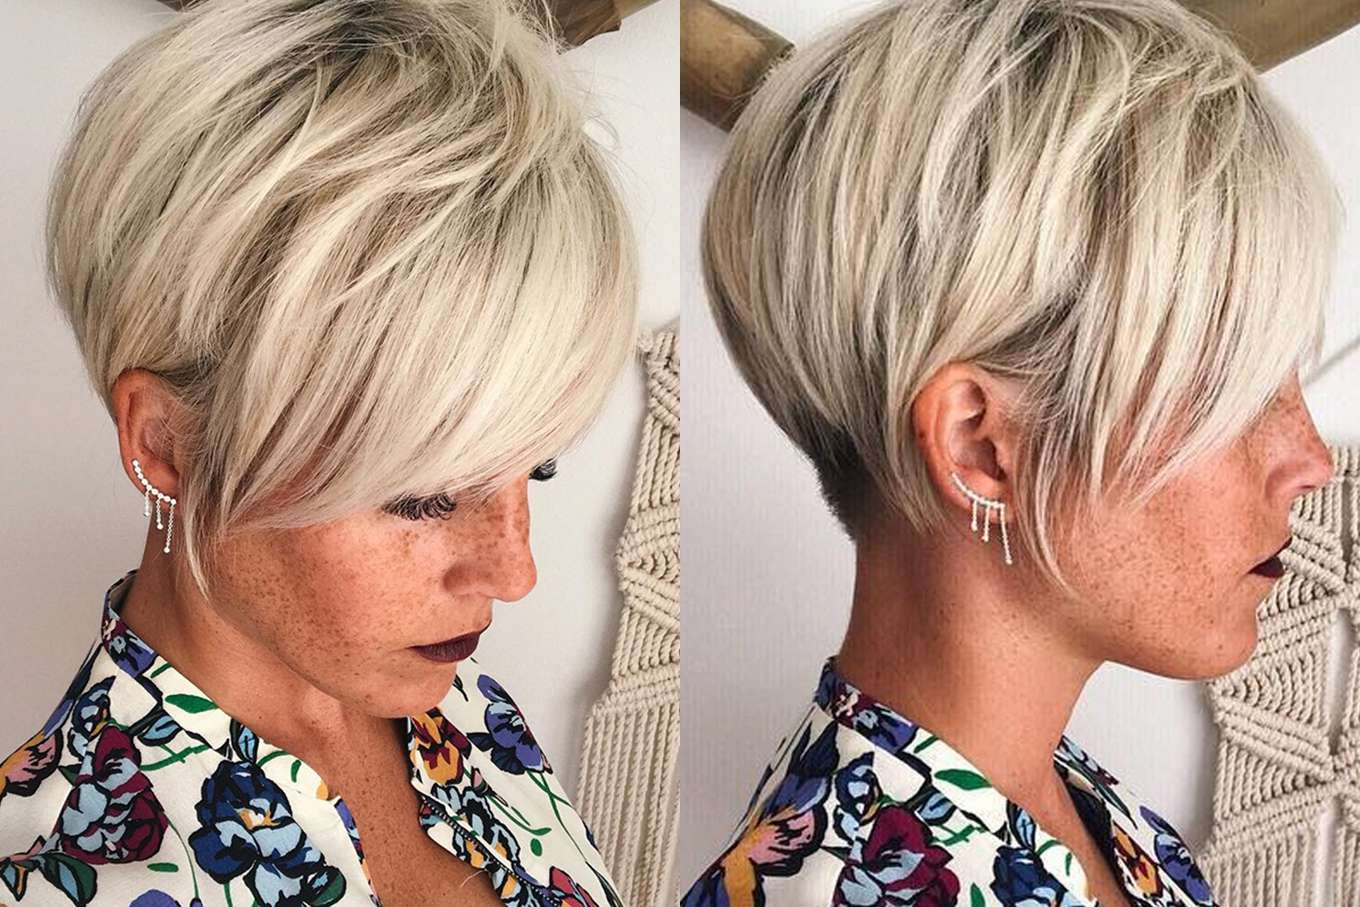 Coiffure Summer 2018 Short Hairstyle 2018 Fashion And Women